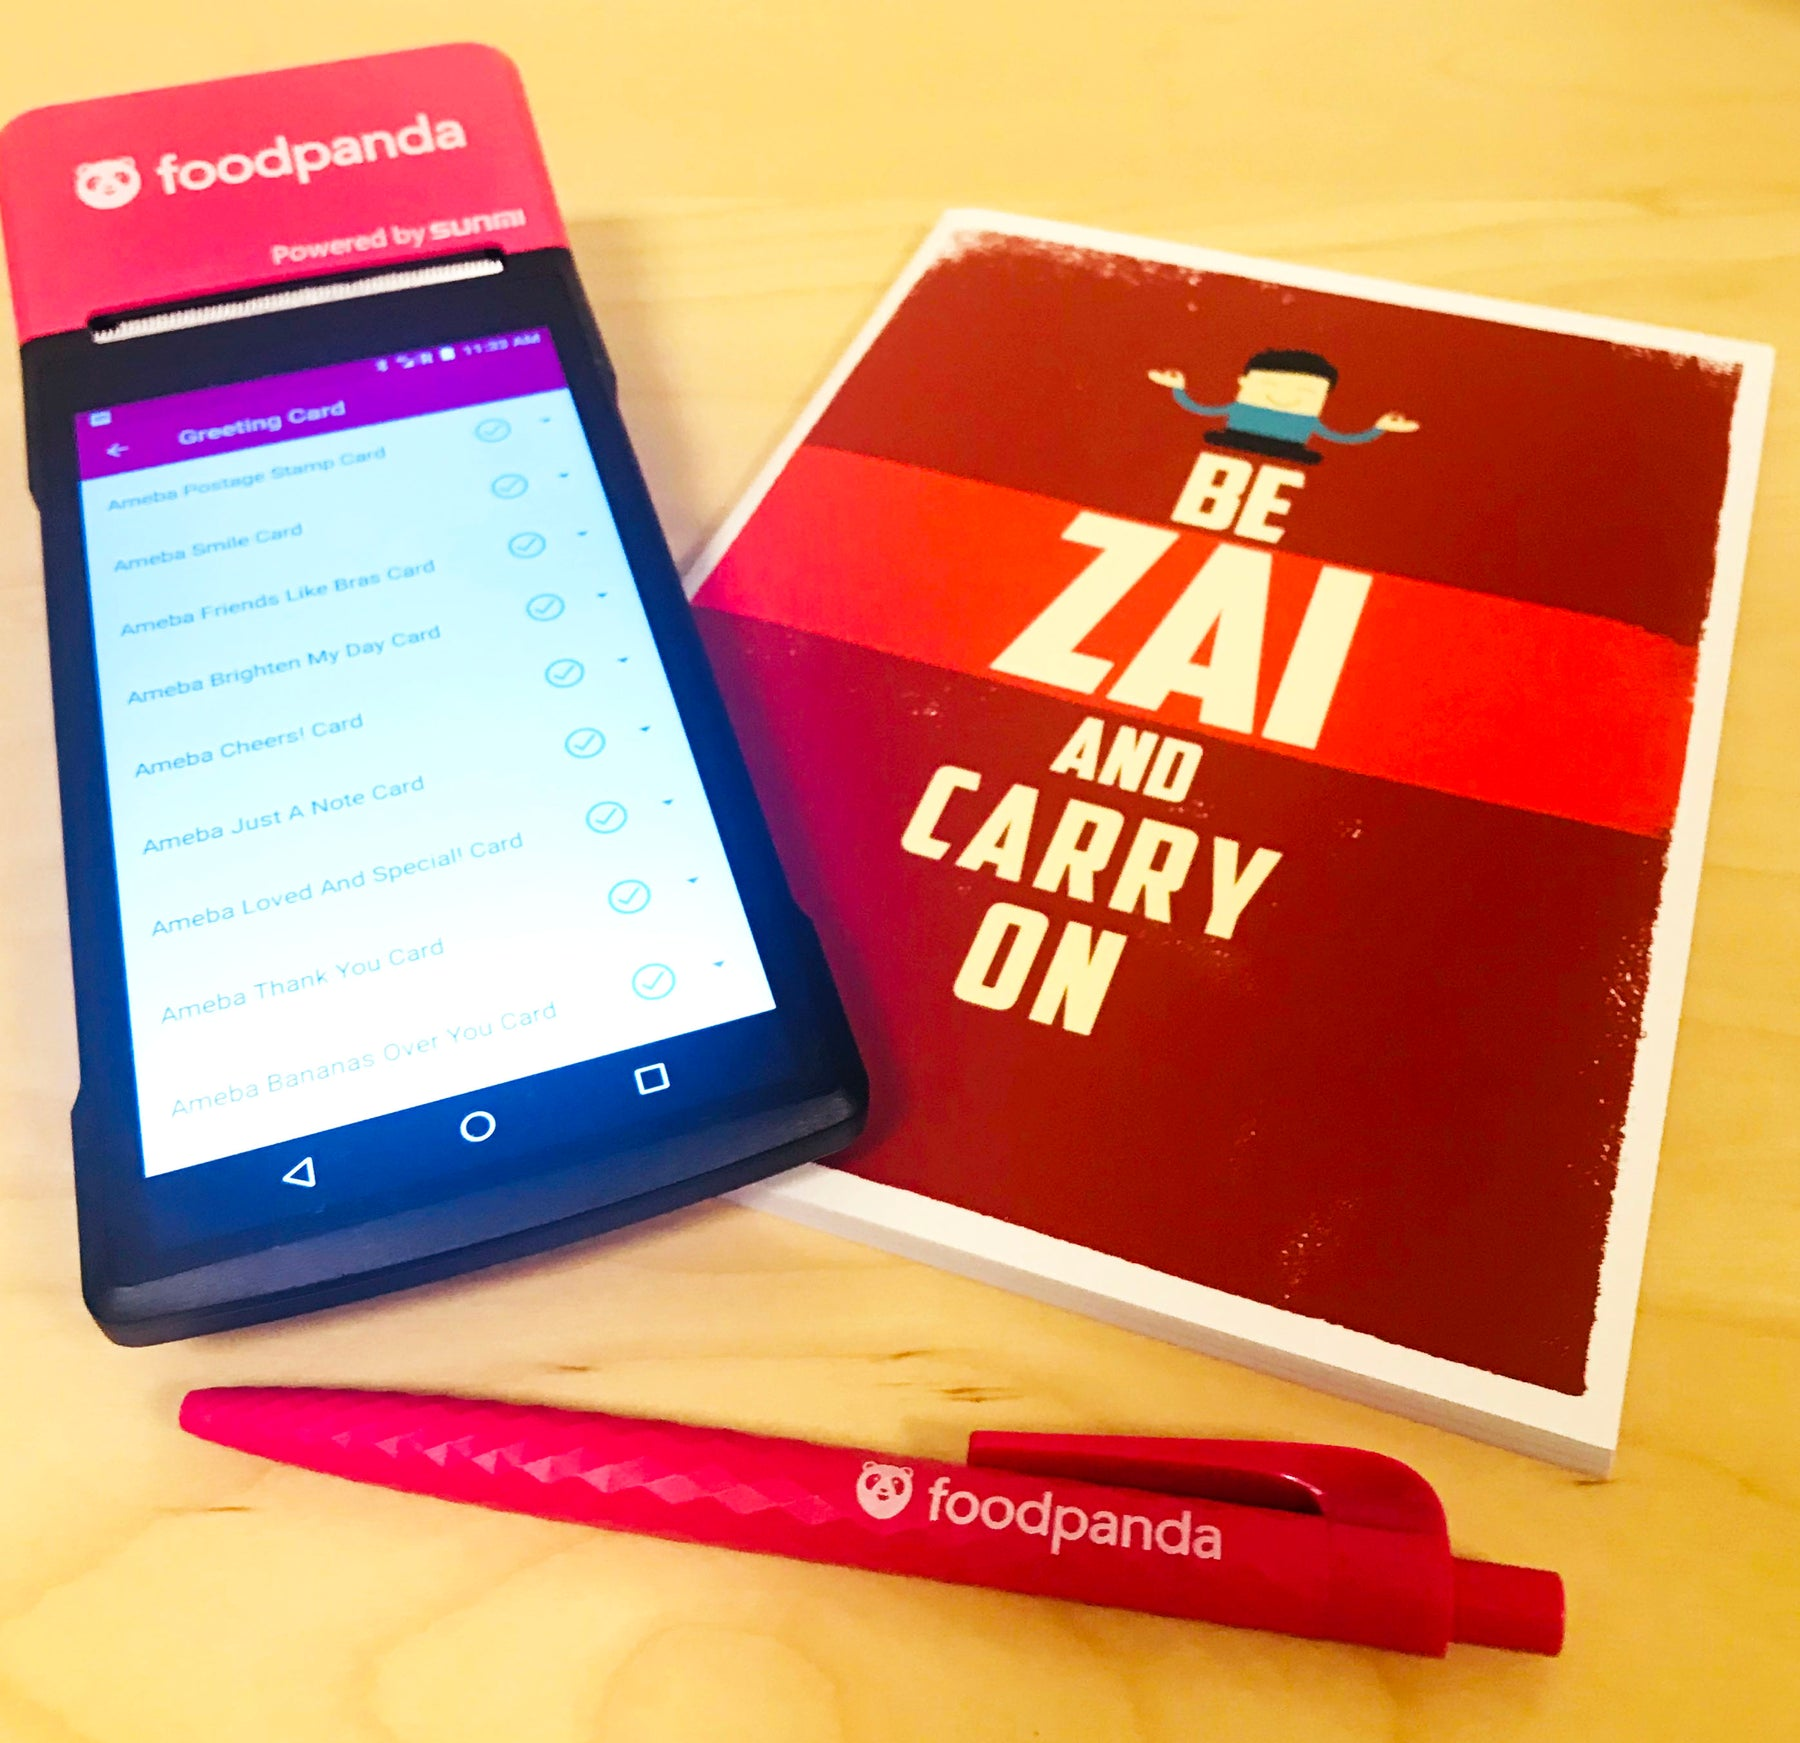 Get a gift delivered in 30 minutes